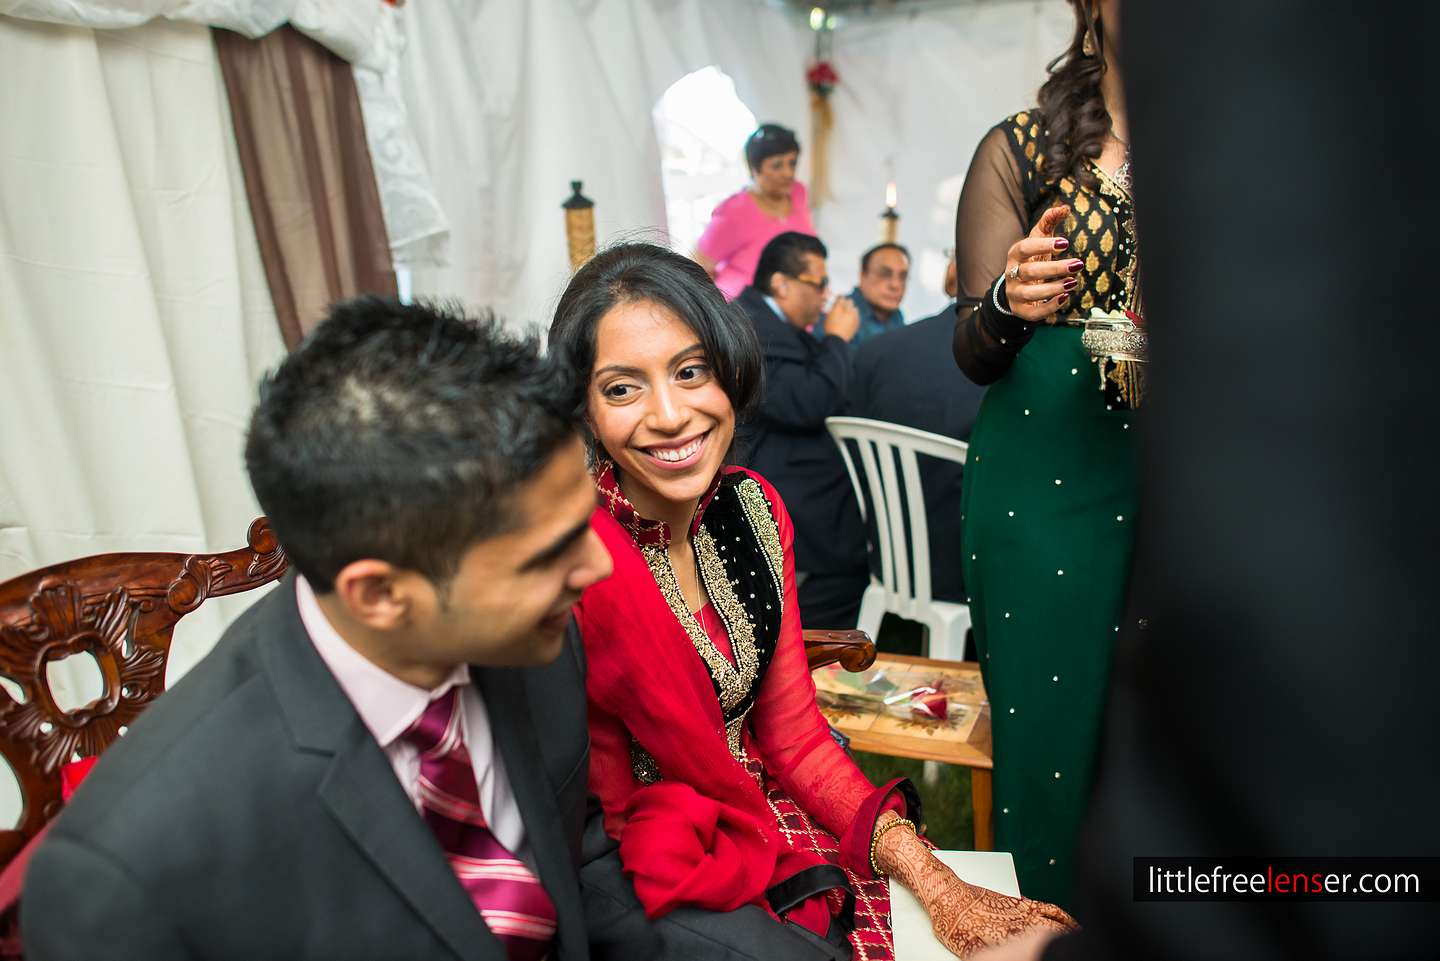 tn_alisha&ayaz_engagementparty_06